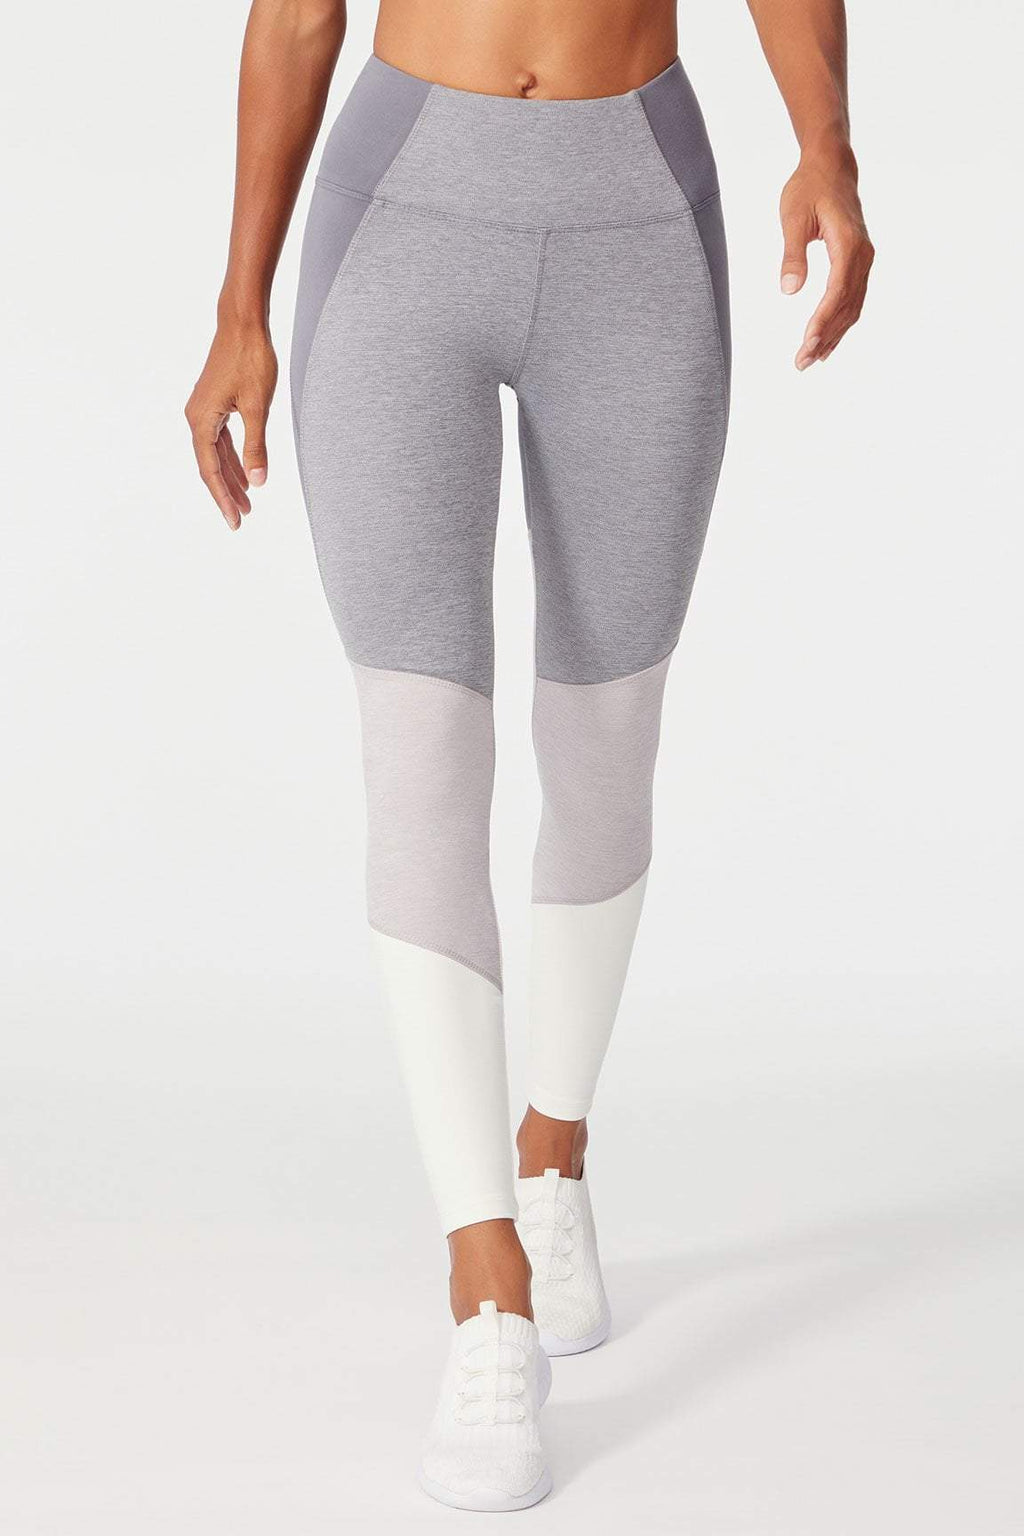 Jordan Color Block Legging